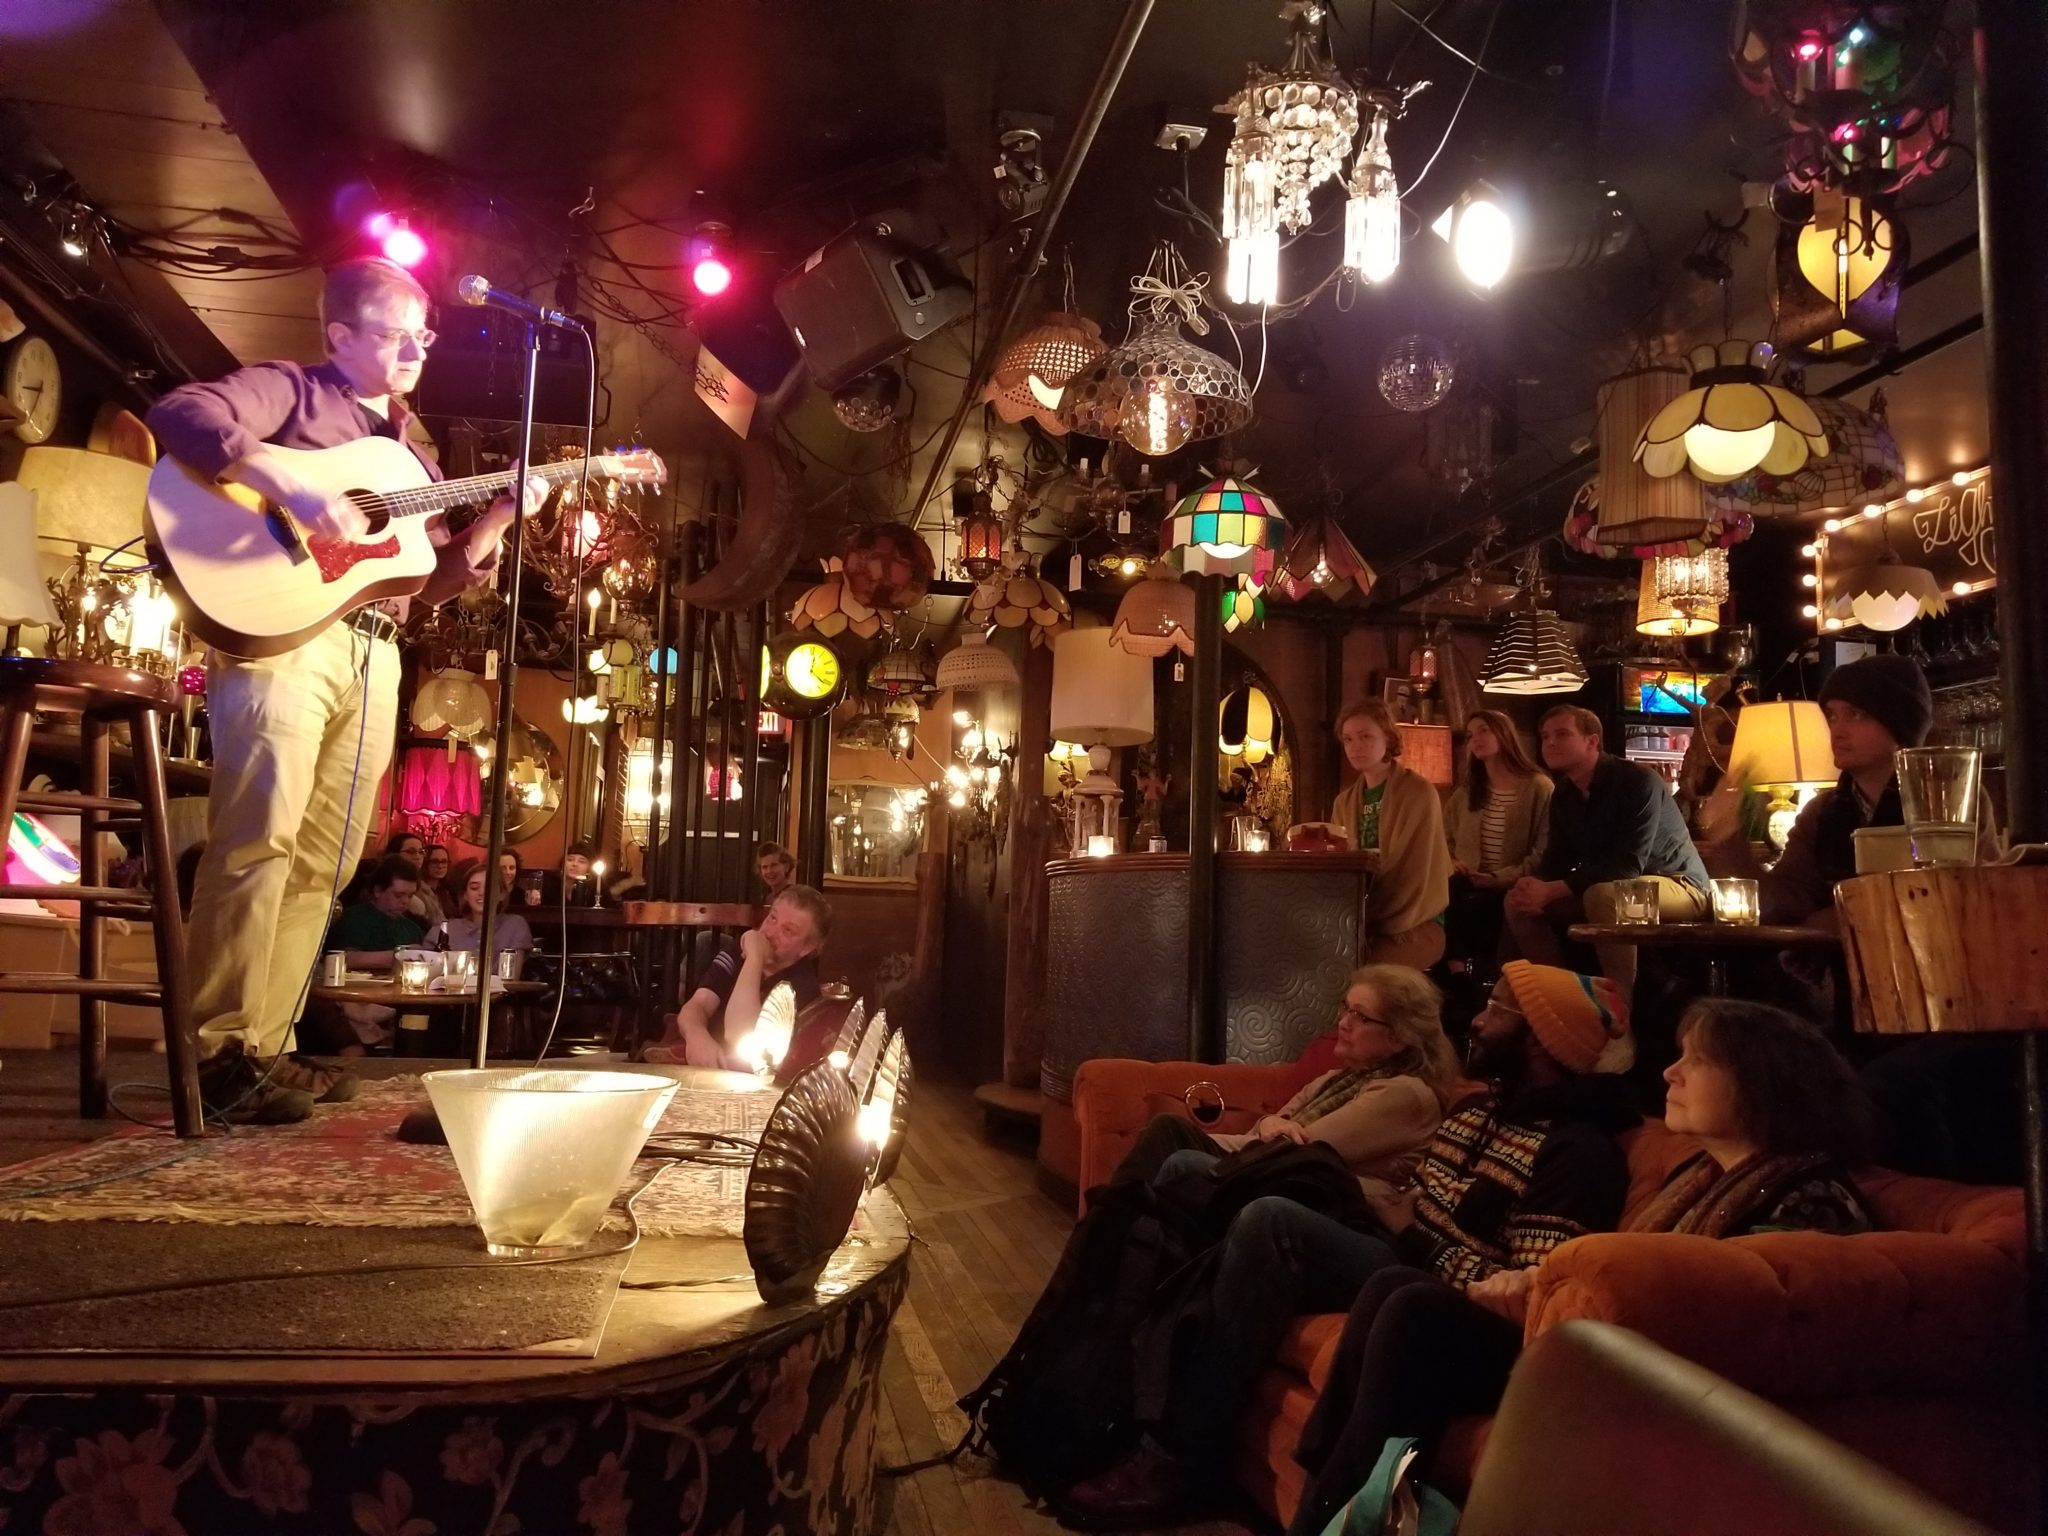 Nate Orshan Performs An Original Song At The 2nd Burlington Writers  Workshop Open Mic Night At The Light Club Lamp Shop.